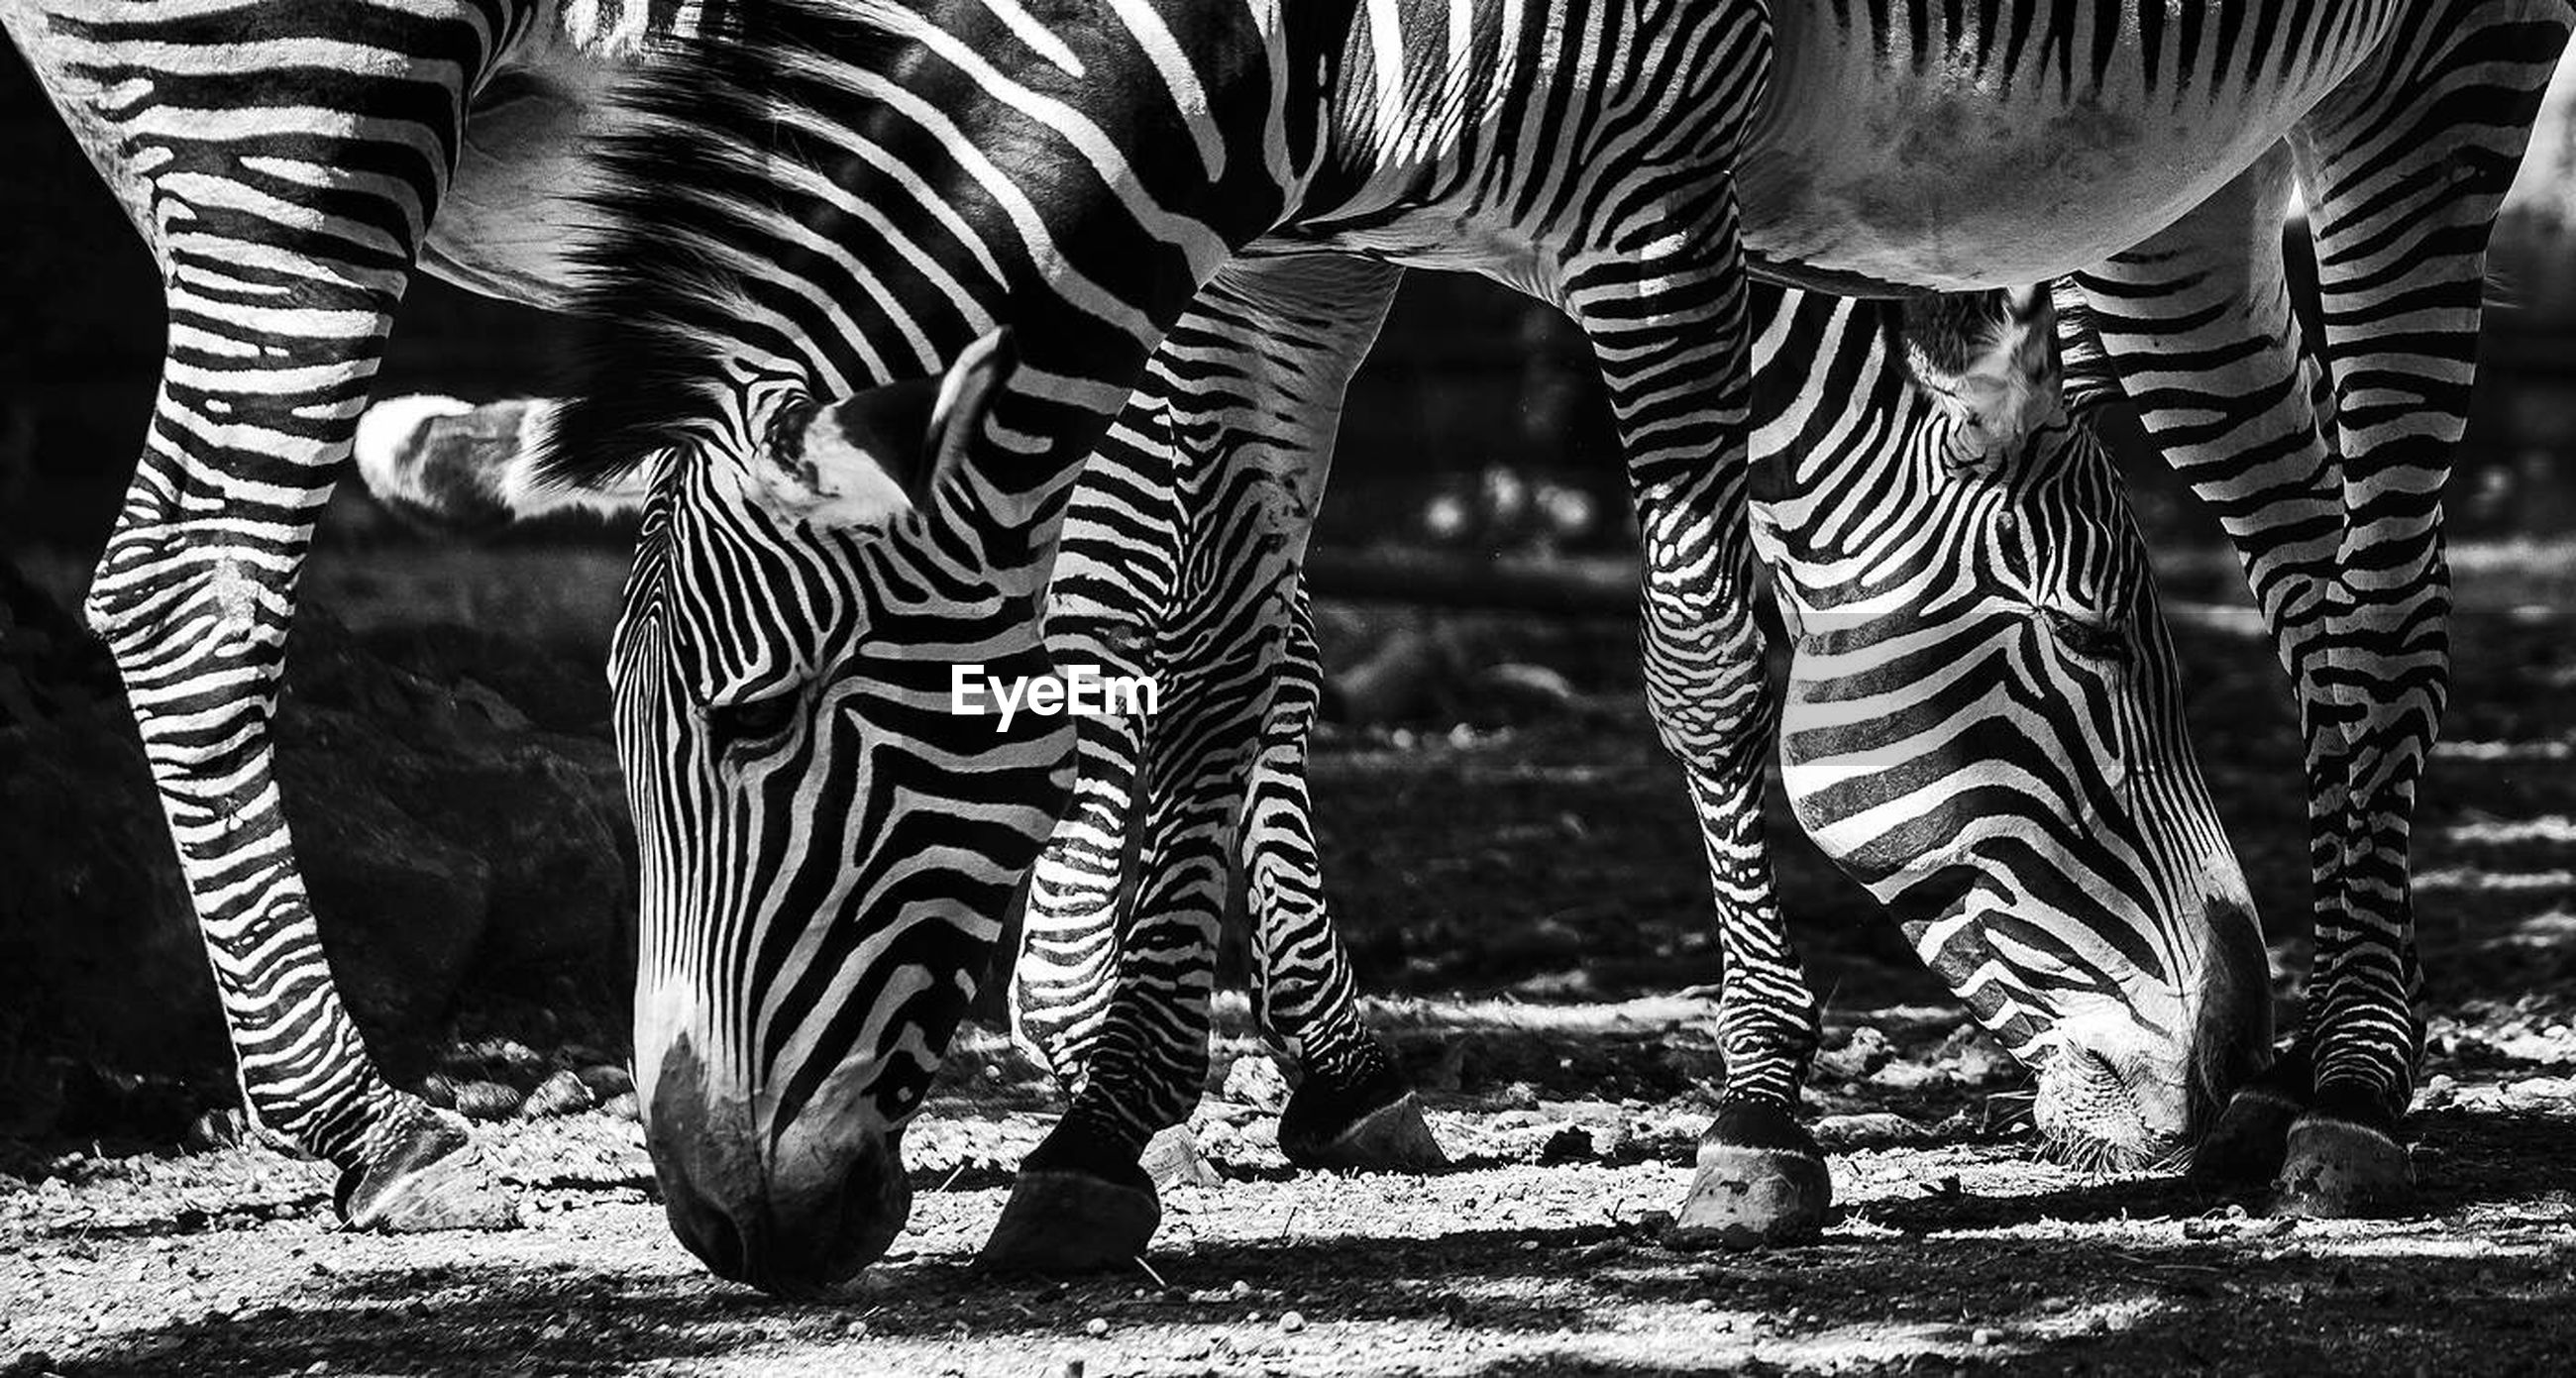 LOW SECTION OF ZEBRA WITH HORSES